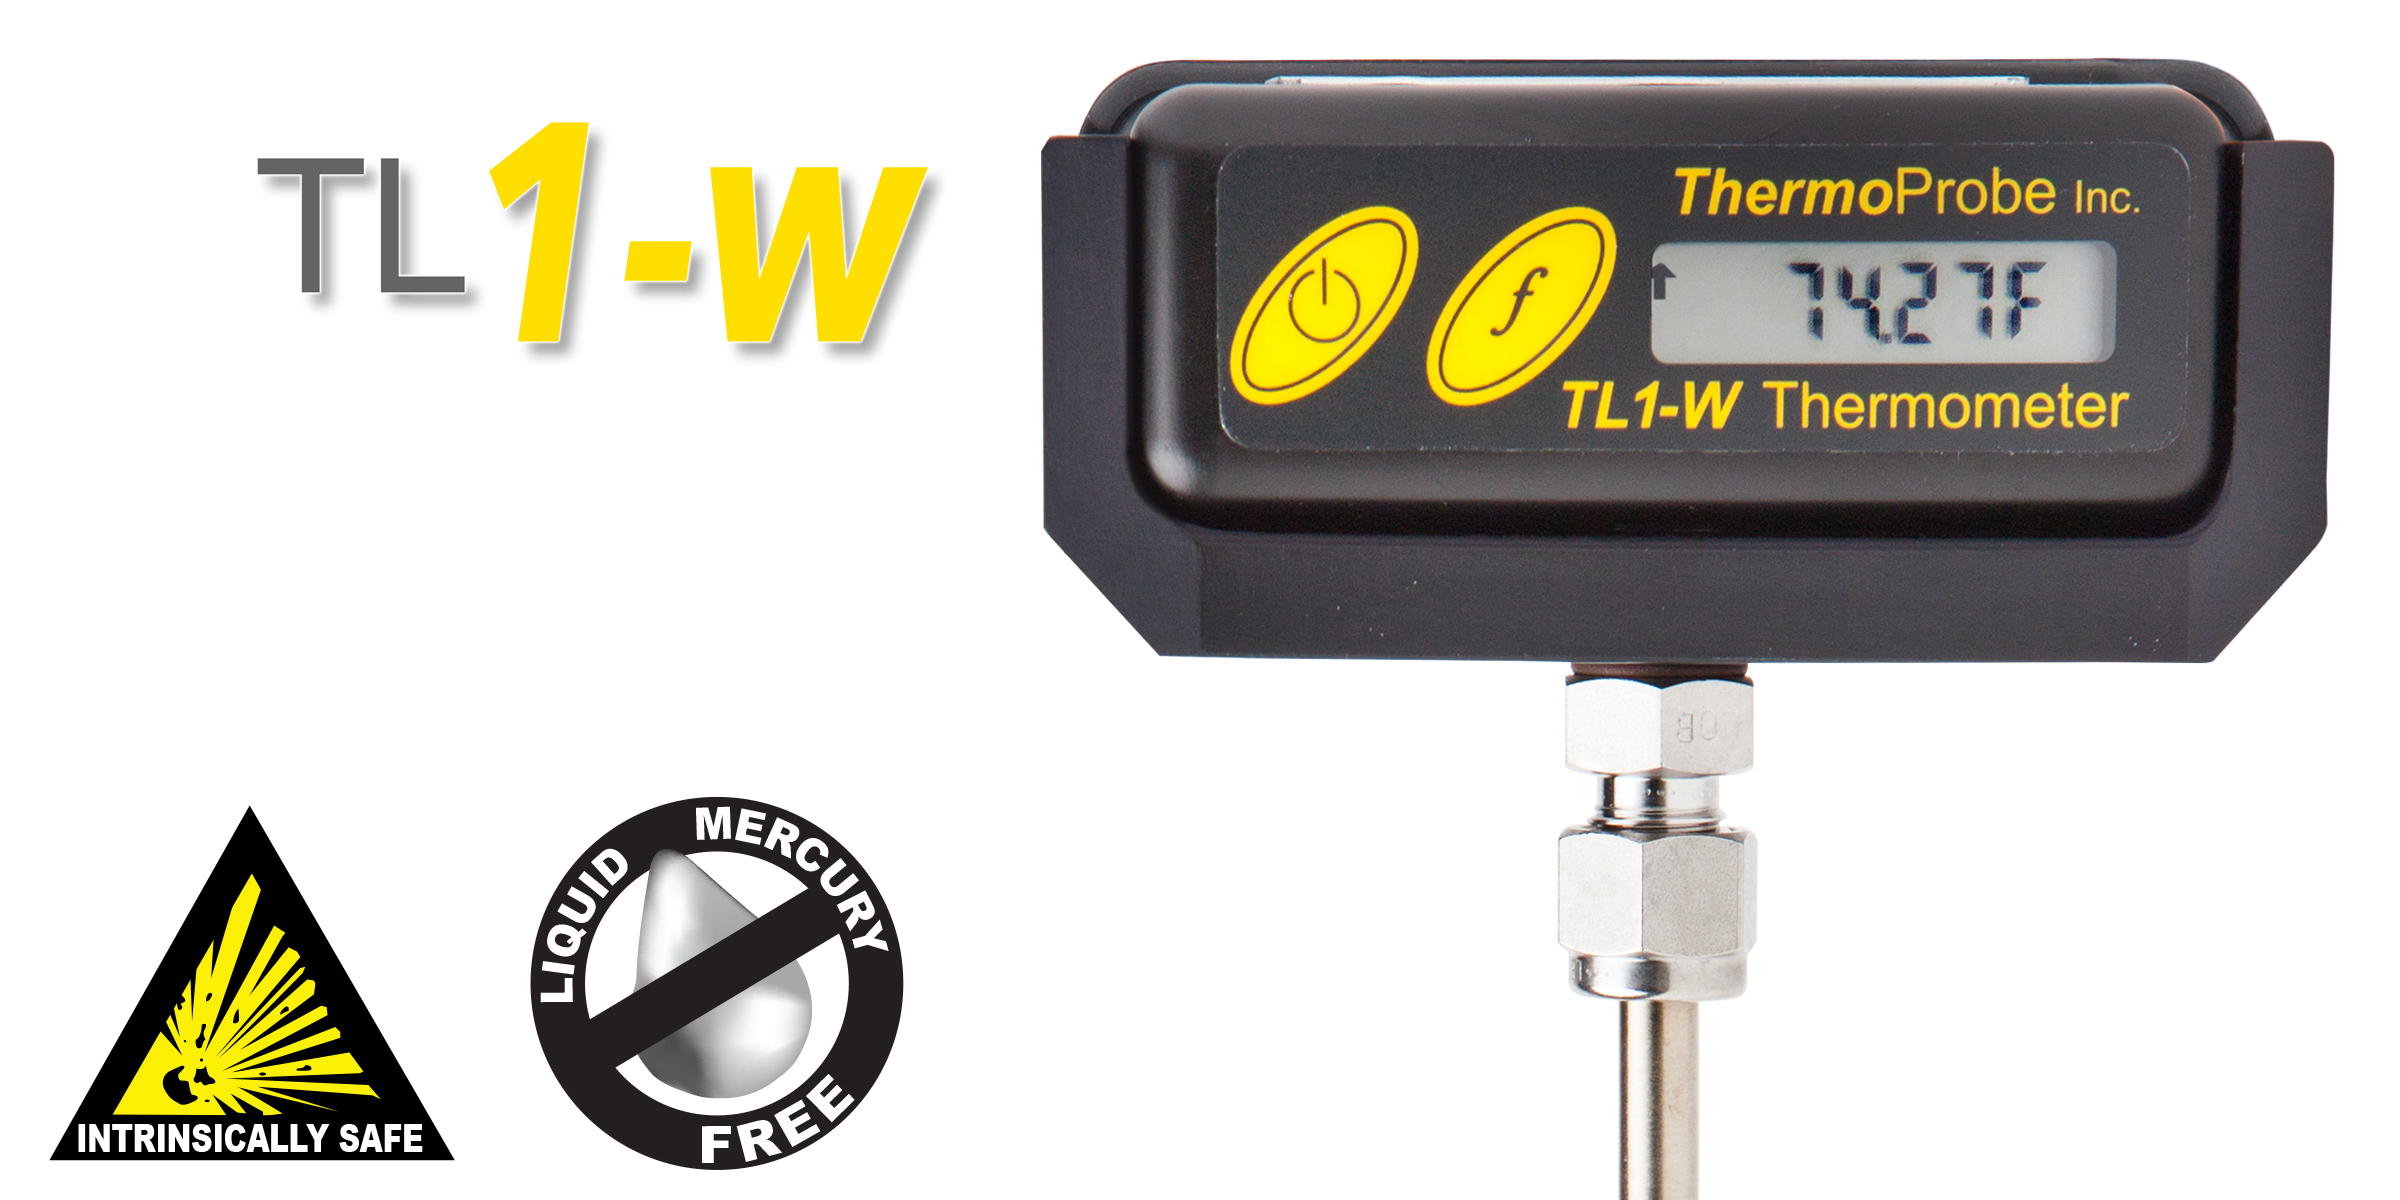 Features for the ThermoProbe TL1-W